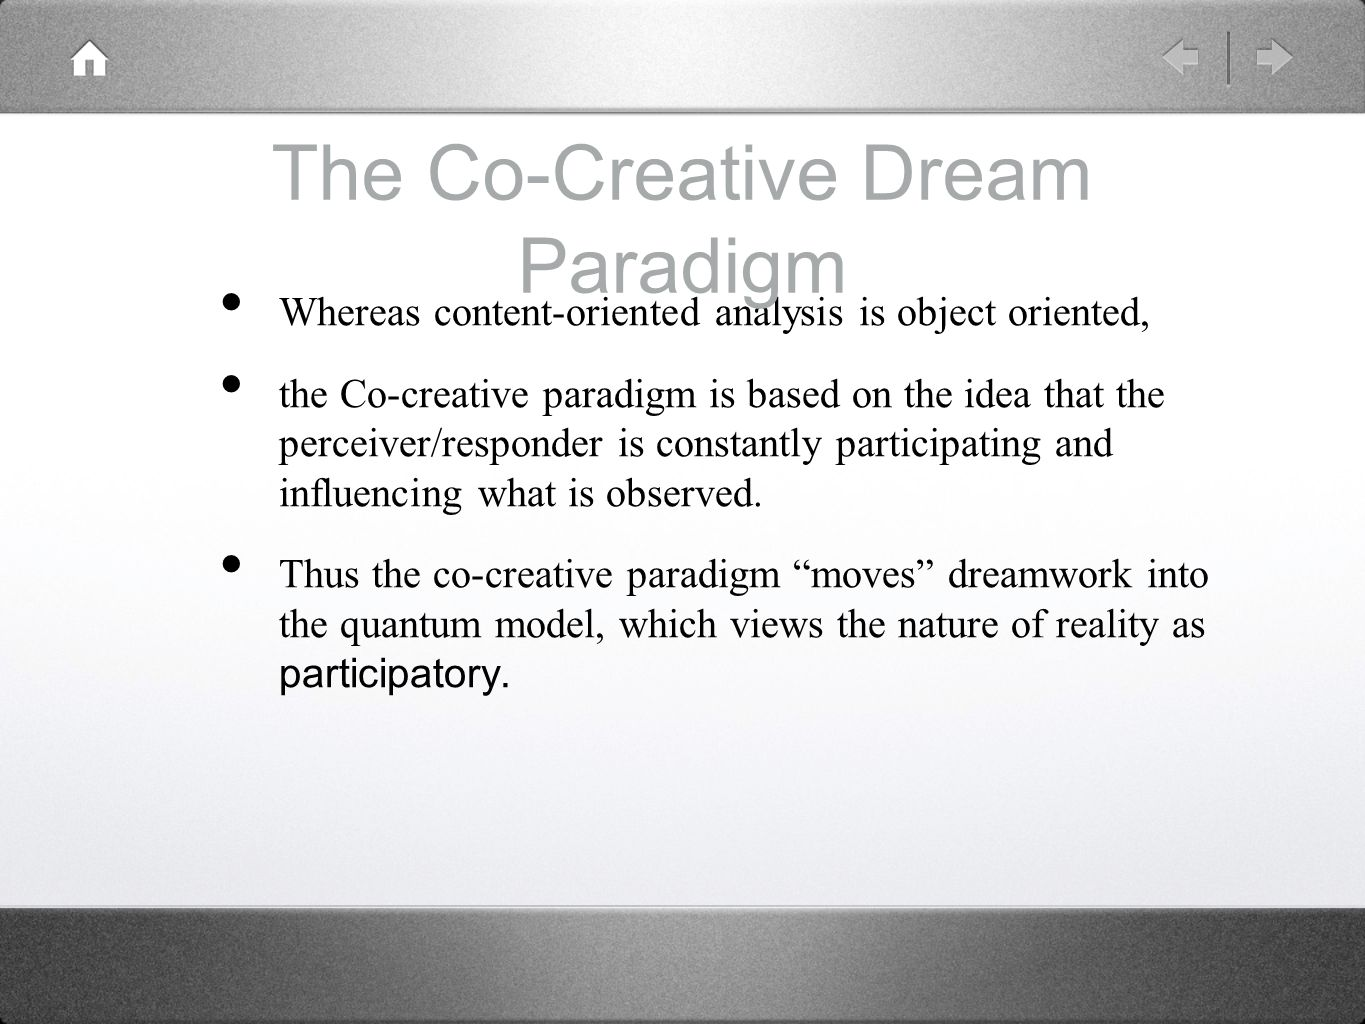 Whereas content-oriented analysis is object oriented, the Co-creative paradigm is based on the idea that the perceiver/responder is constantly participating and influencing what is observed.